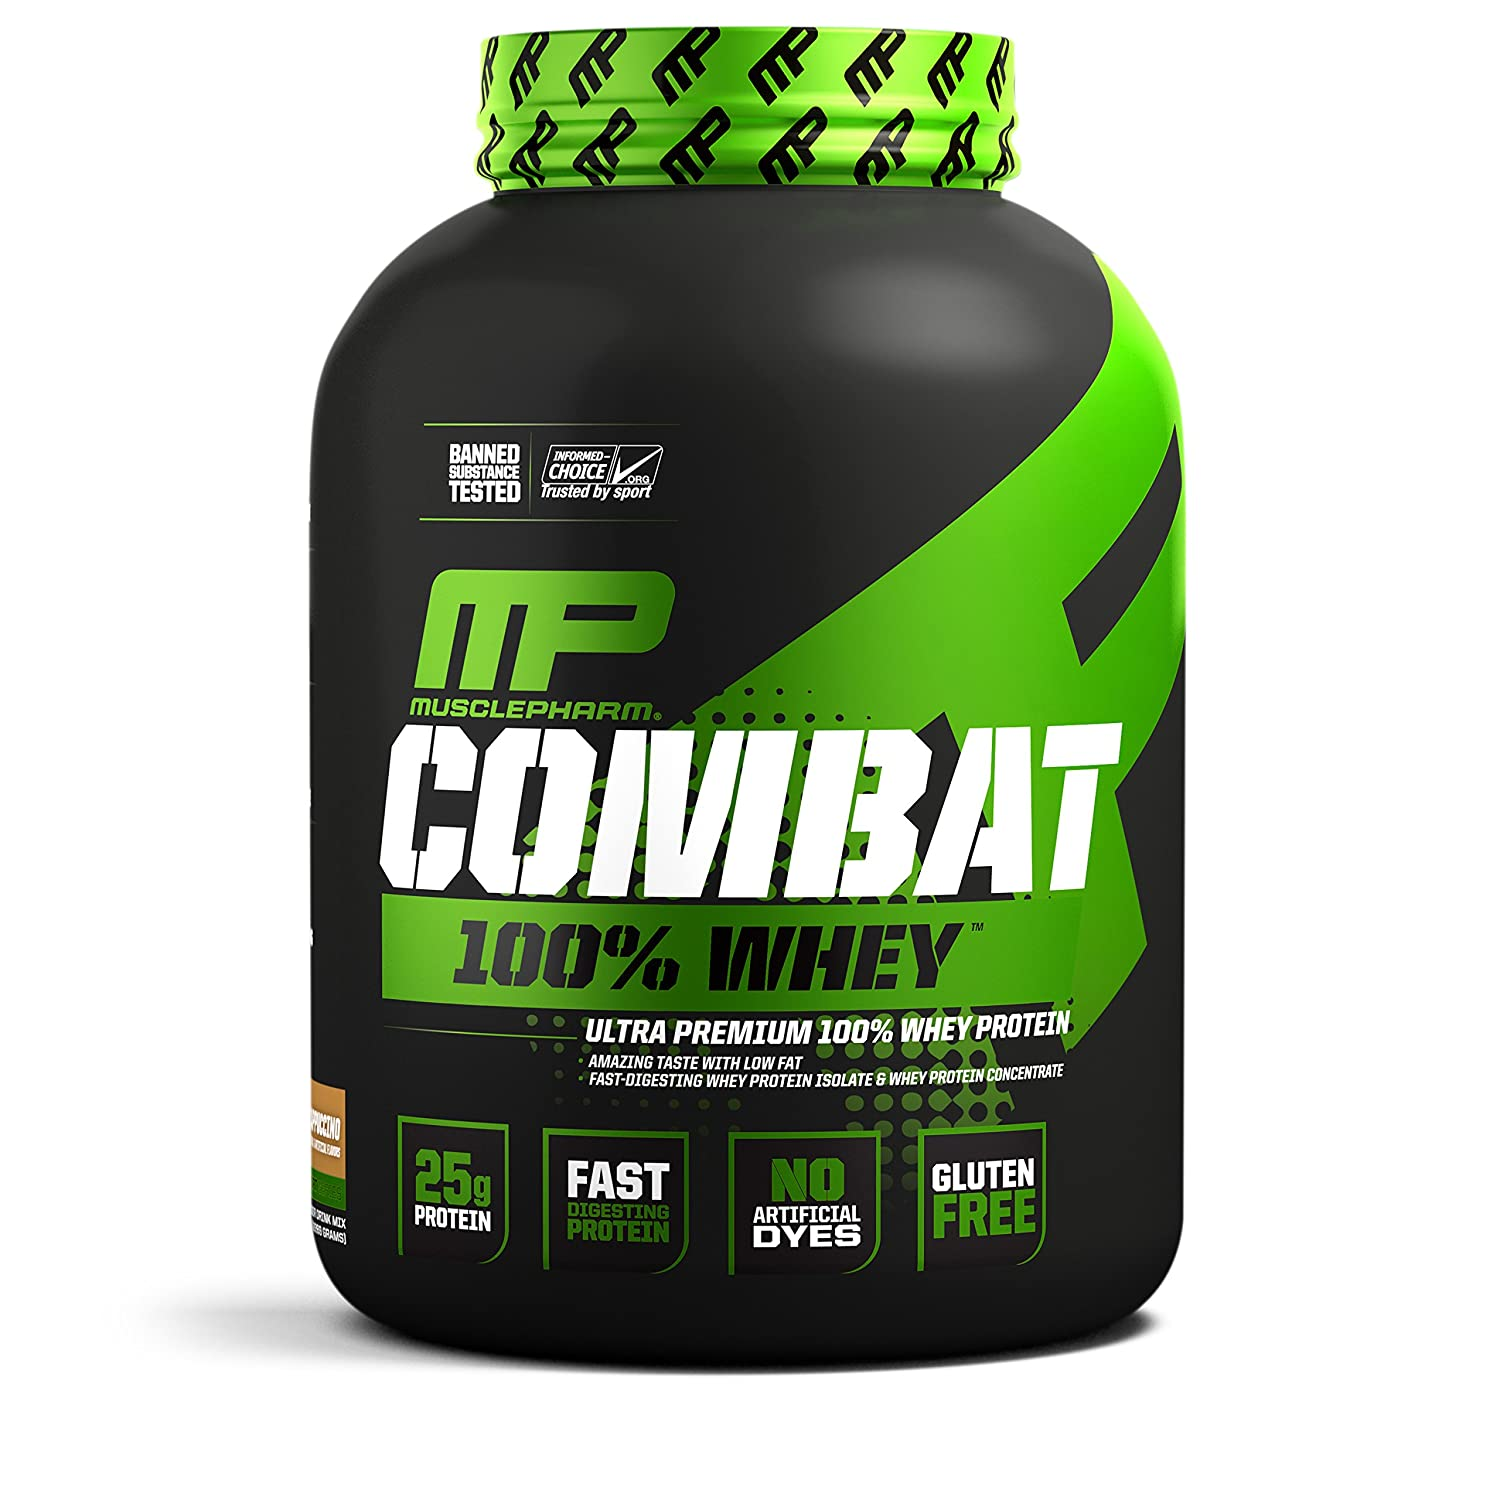 MusclePharm Combat 100 Whey, Muscle-Building Whey Protein Powder, 25 g of Ultra-Premium, Gluten-Free, Low-Fat Blend of Fast-Digesting Whey Protein, cappuccino, 5-Pound, 68 Servings